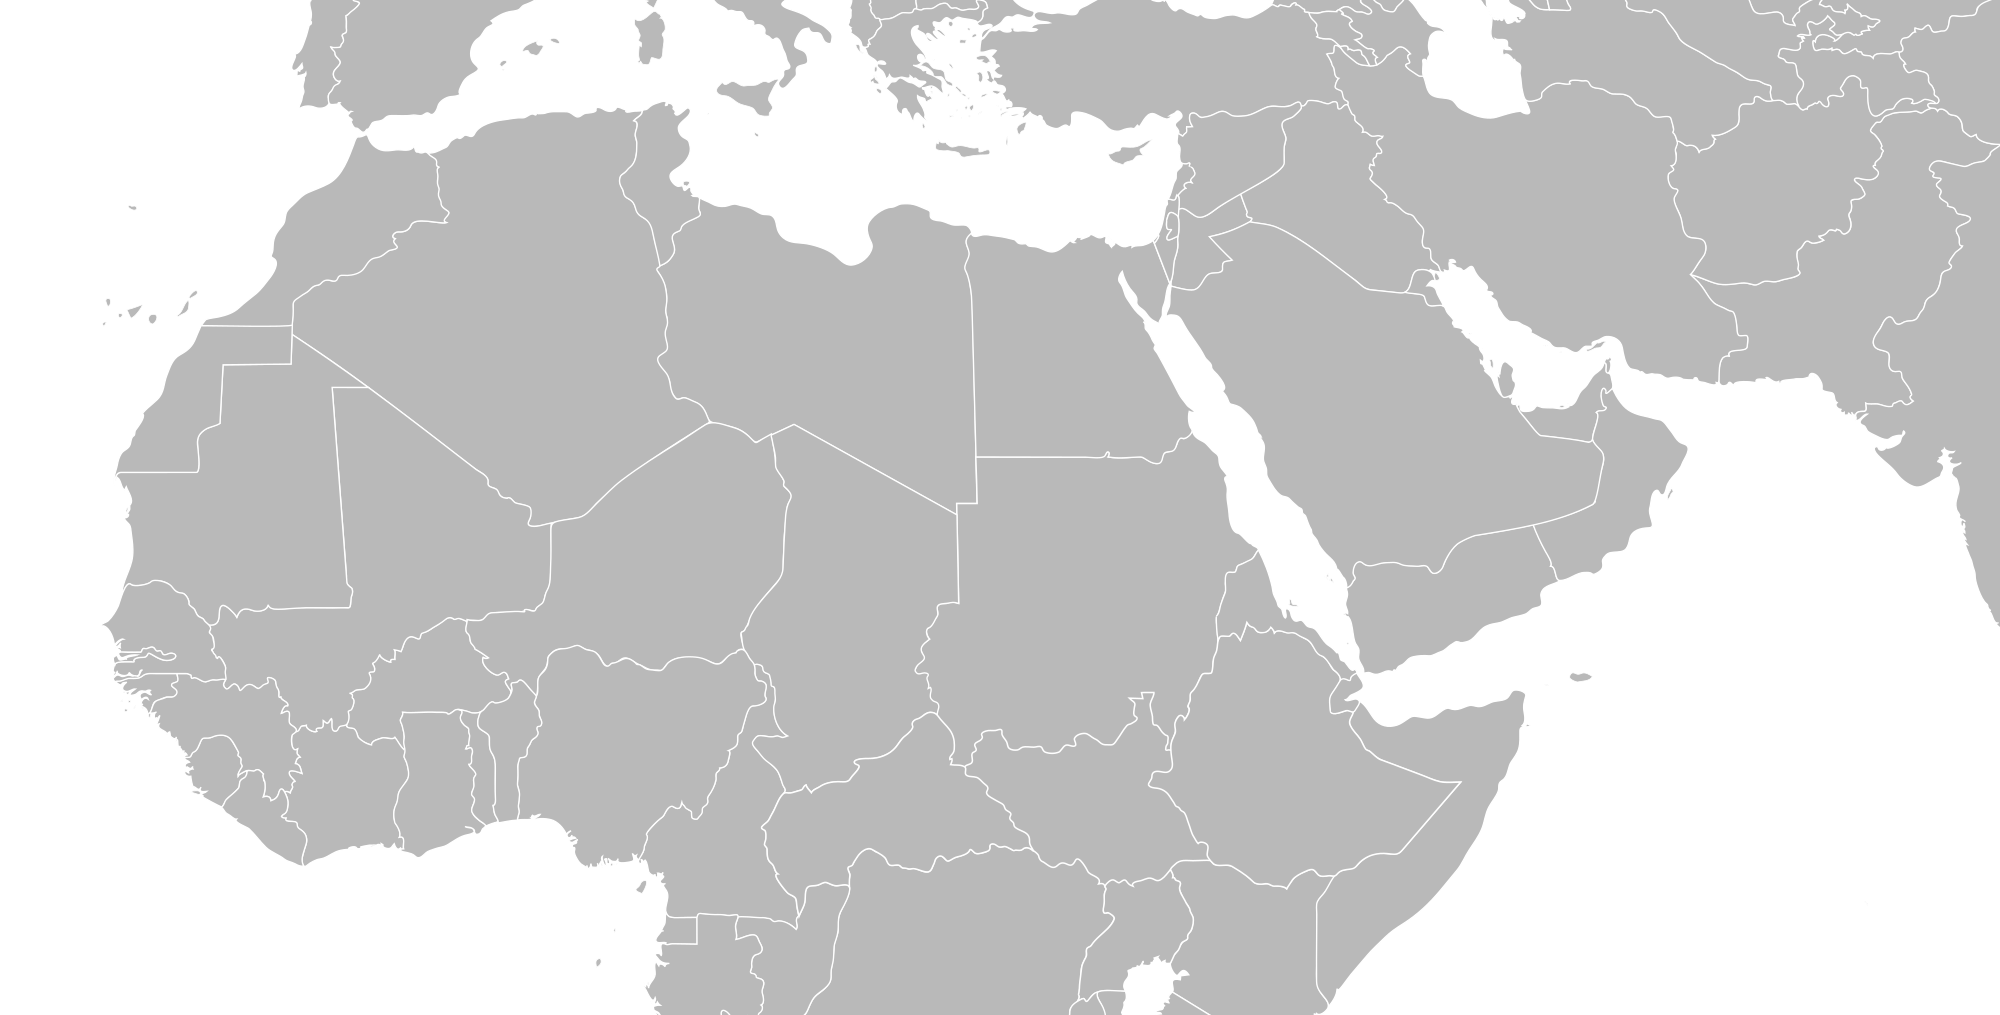 Maps vector mena. File blankmap middle east